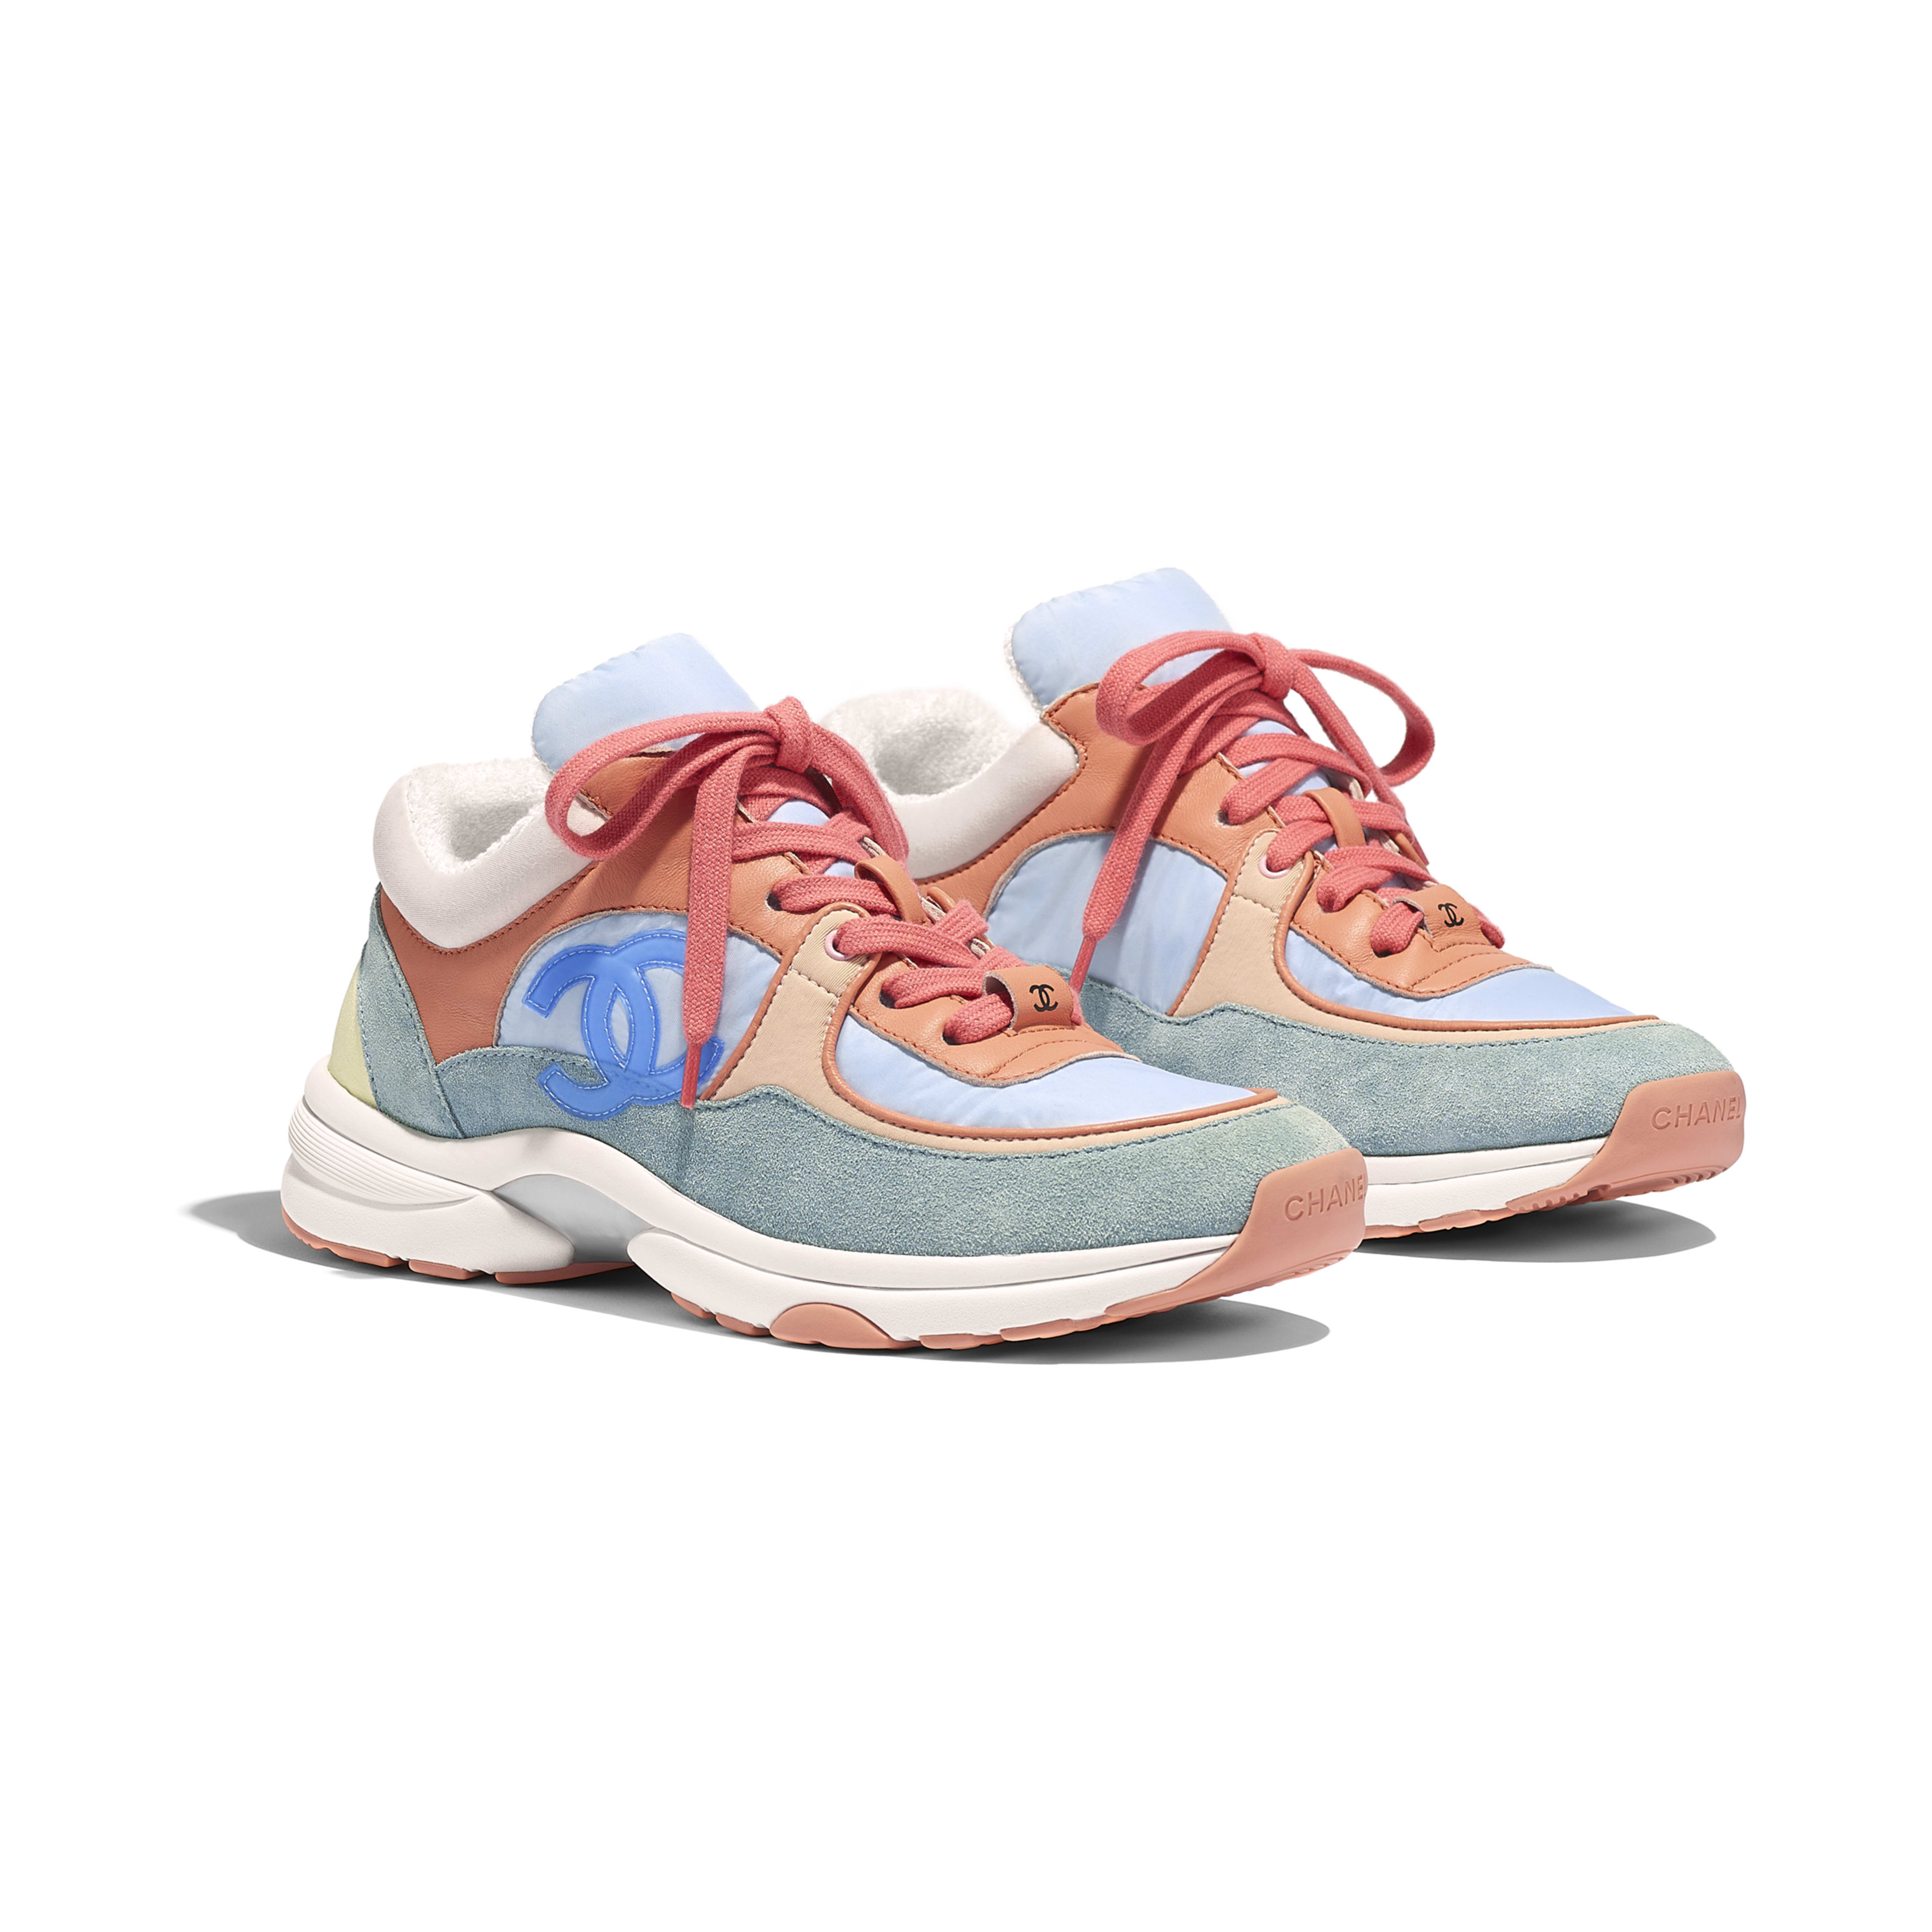 Sneakers - Coral, Light Blue & White - Nylon, Lambskin & Suede Calfskin - Alternative view - see full sized version